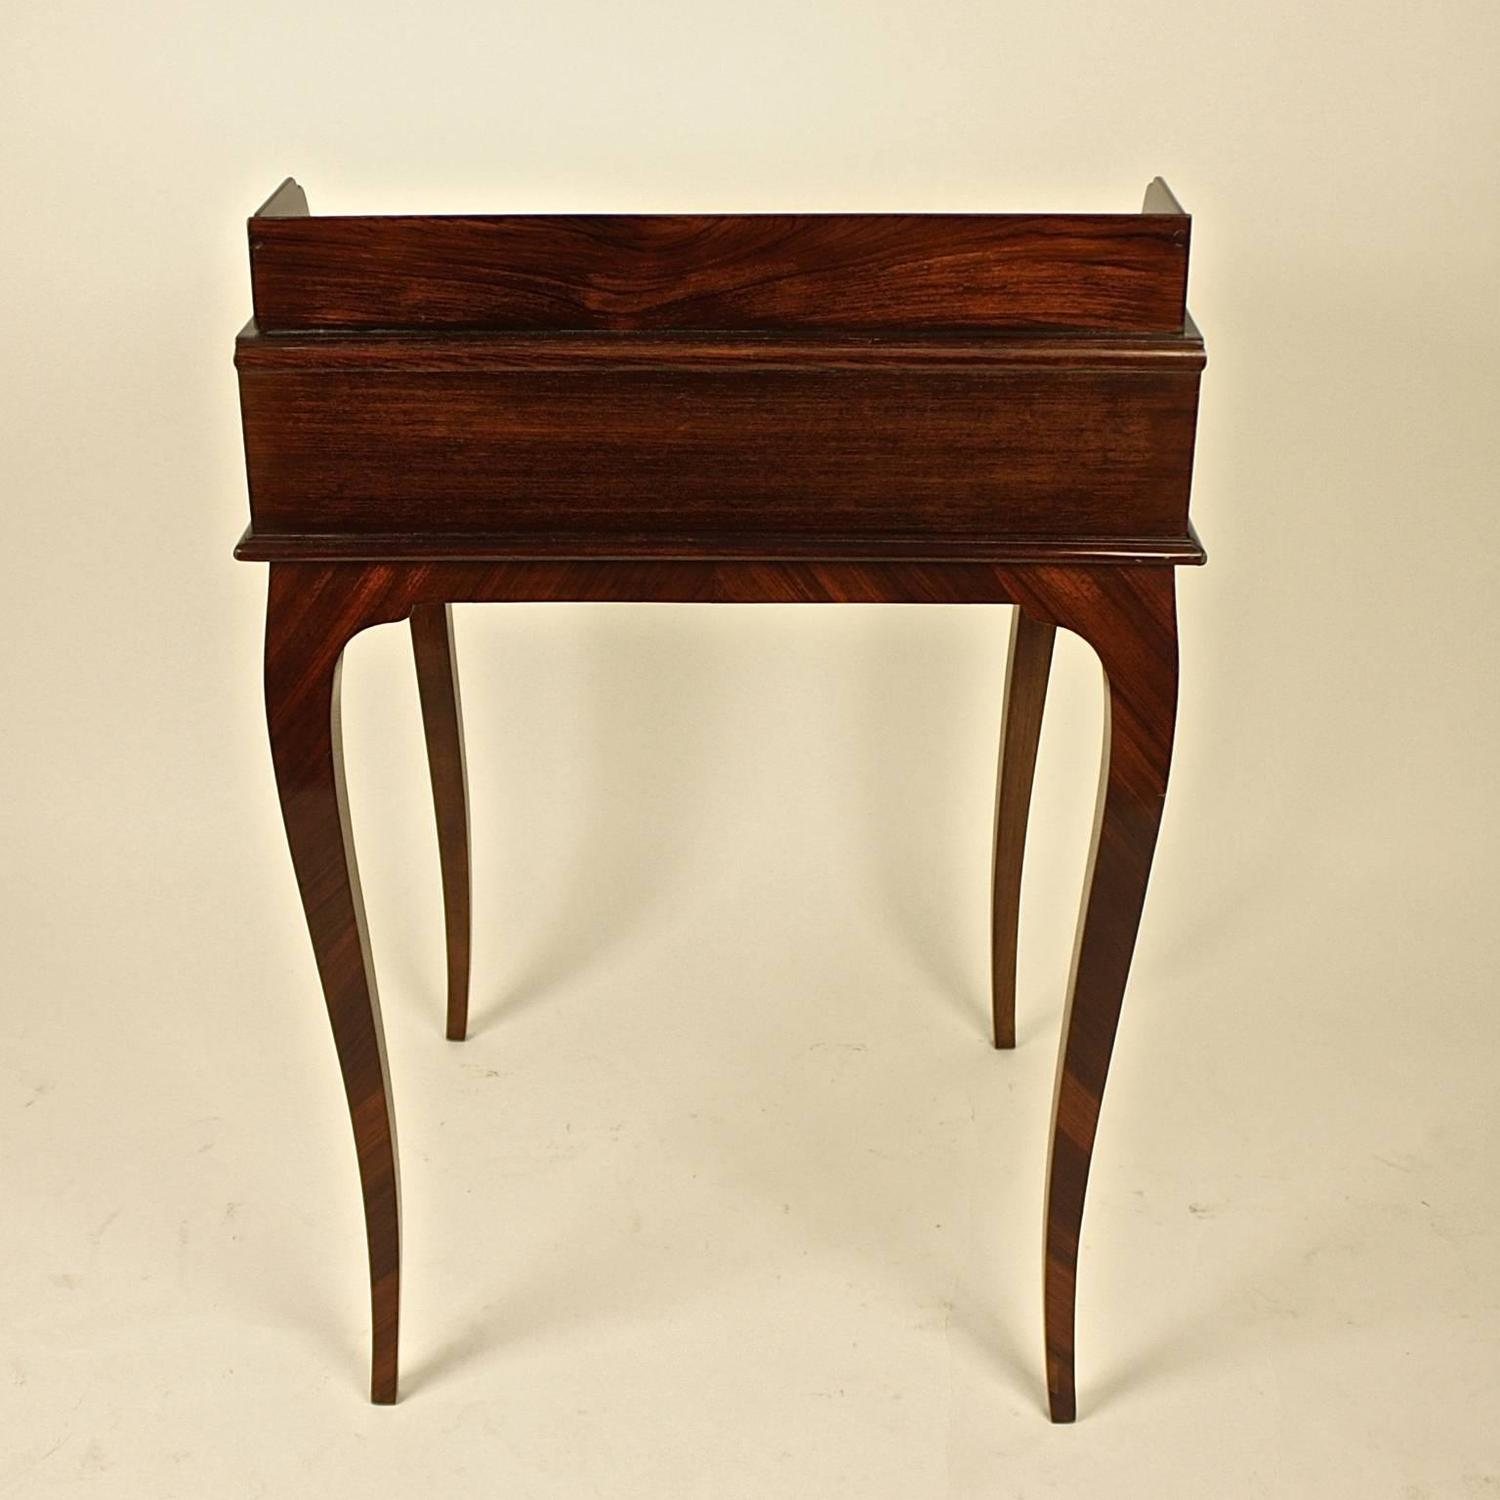 #3C180B Small 19th Century Mahogany Bonheur De Jour Or Ladie's Desk For Sale  with 1500x1500 px of Recommended Small Ladies Writing Desk 15001500 save image @ avoidforclosure.info